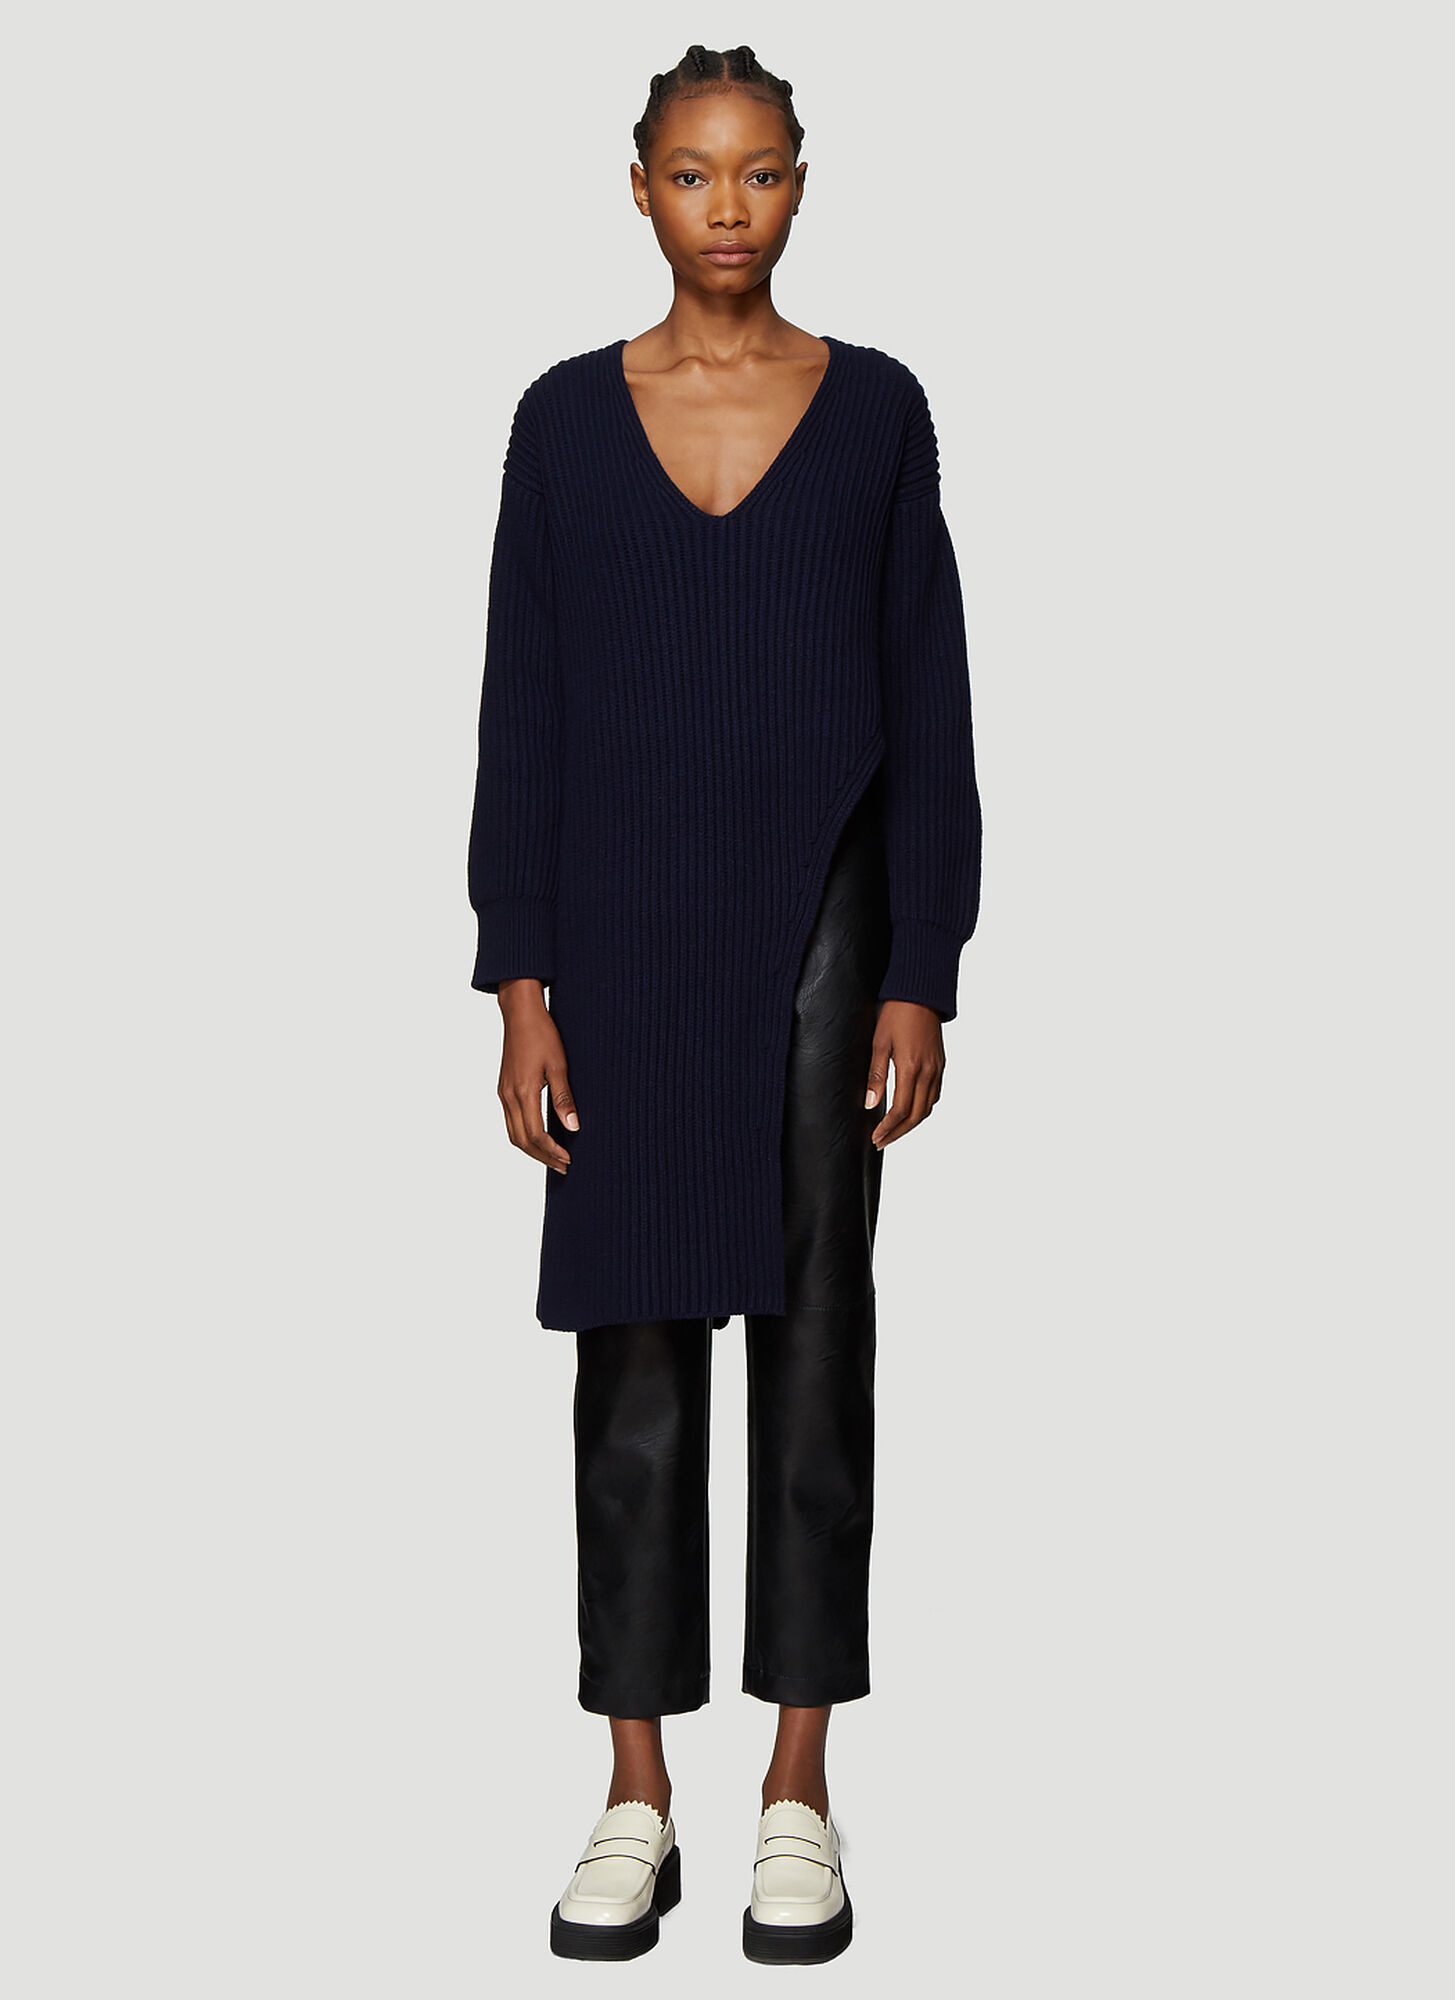 Stella McCartney Longline Asymmetric Sweater in Blue